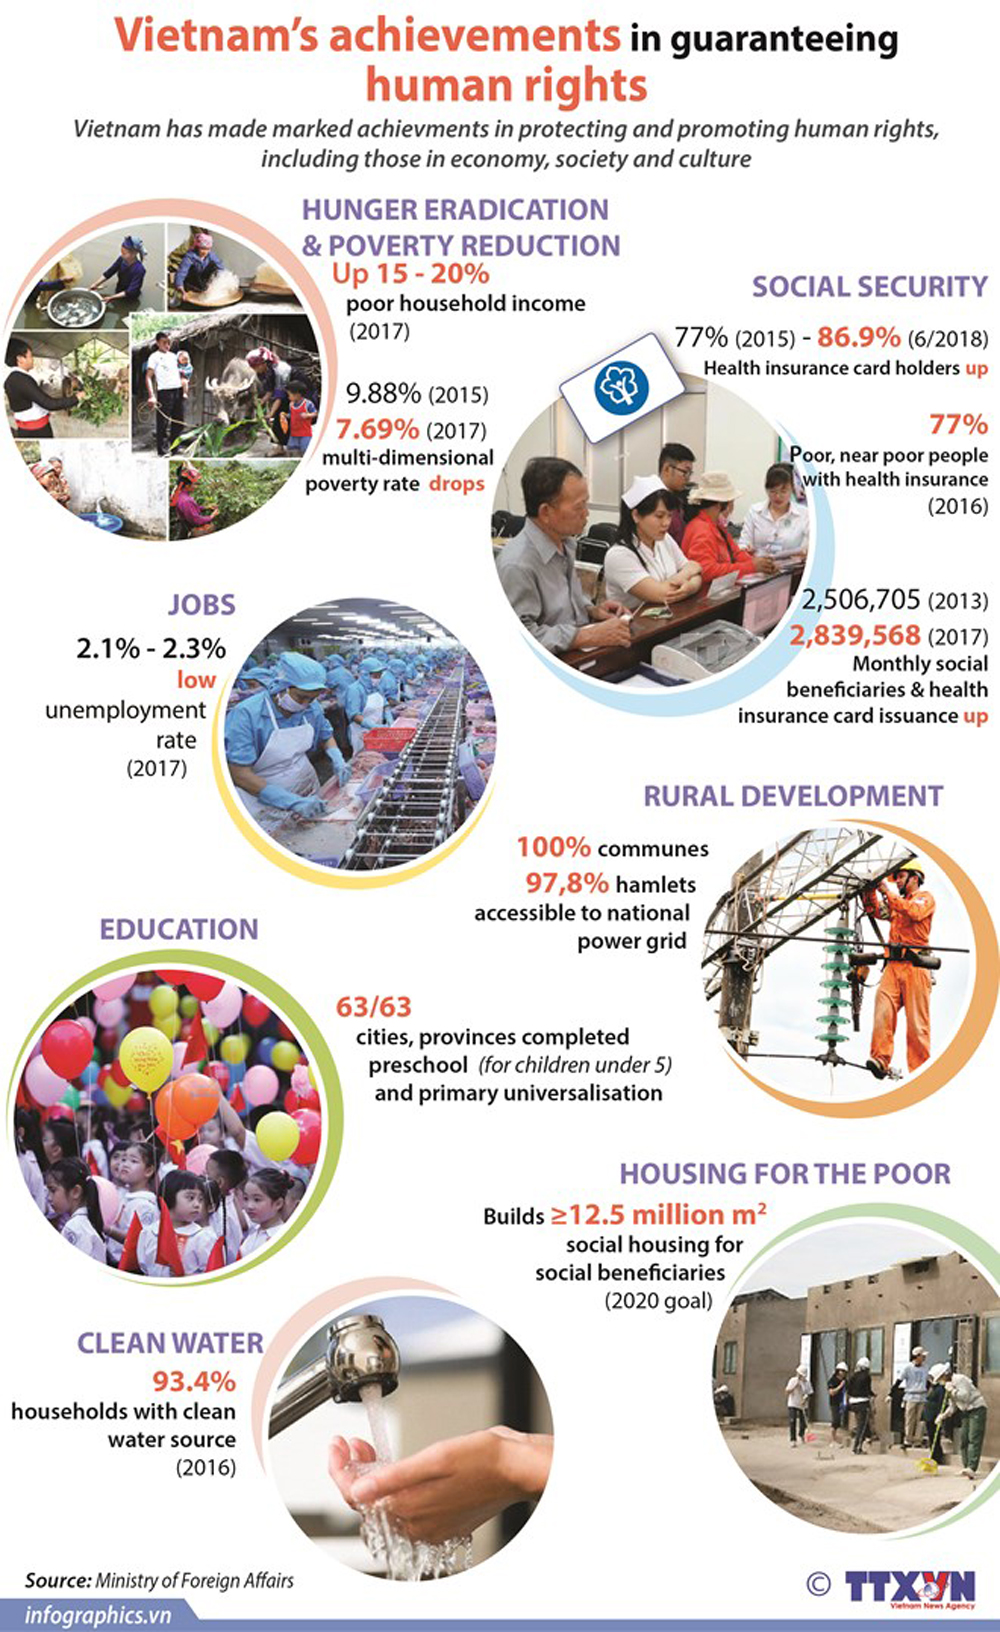 Vietnam's achievements, guaranteeing human rights, economy society and culture, social security, poor household